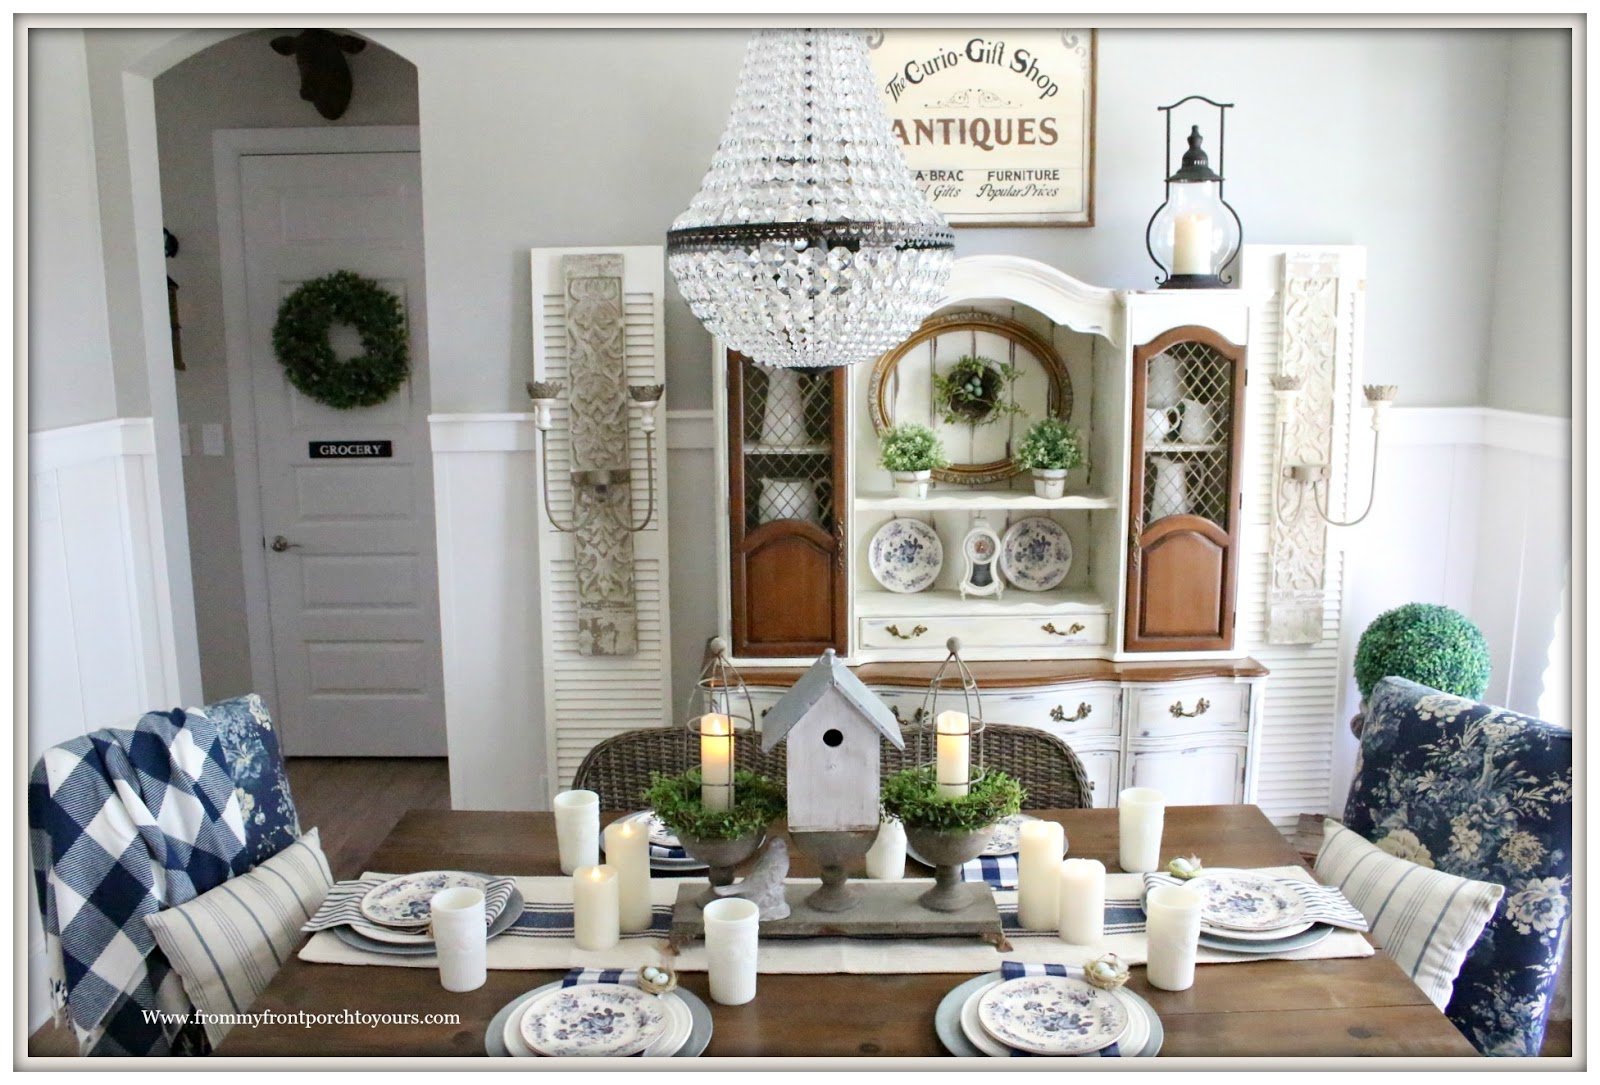 French Country Farmhouse Dining Room Spring Decor Buffalo Check Blue And White